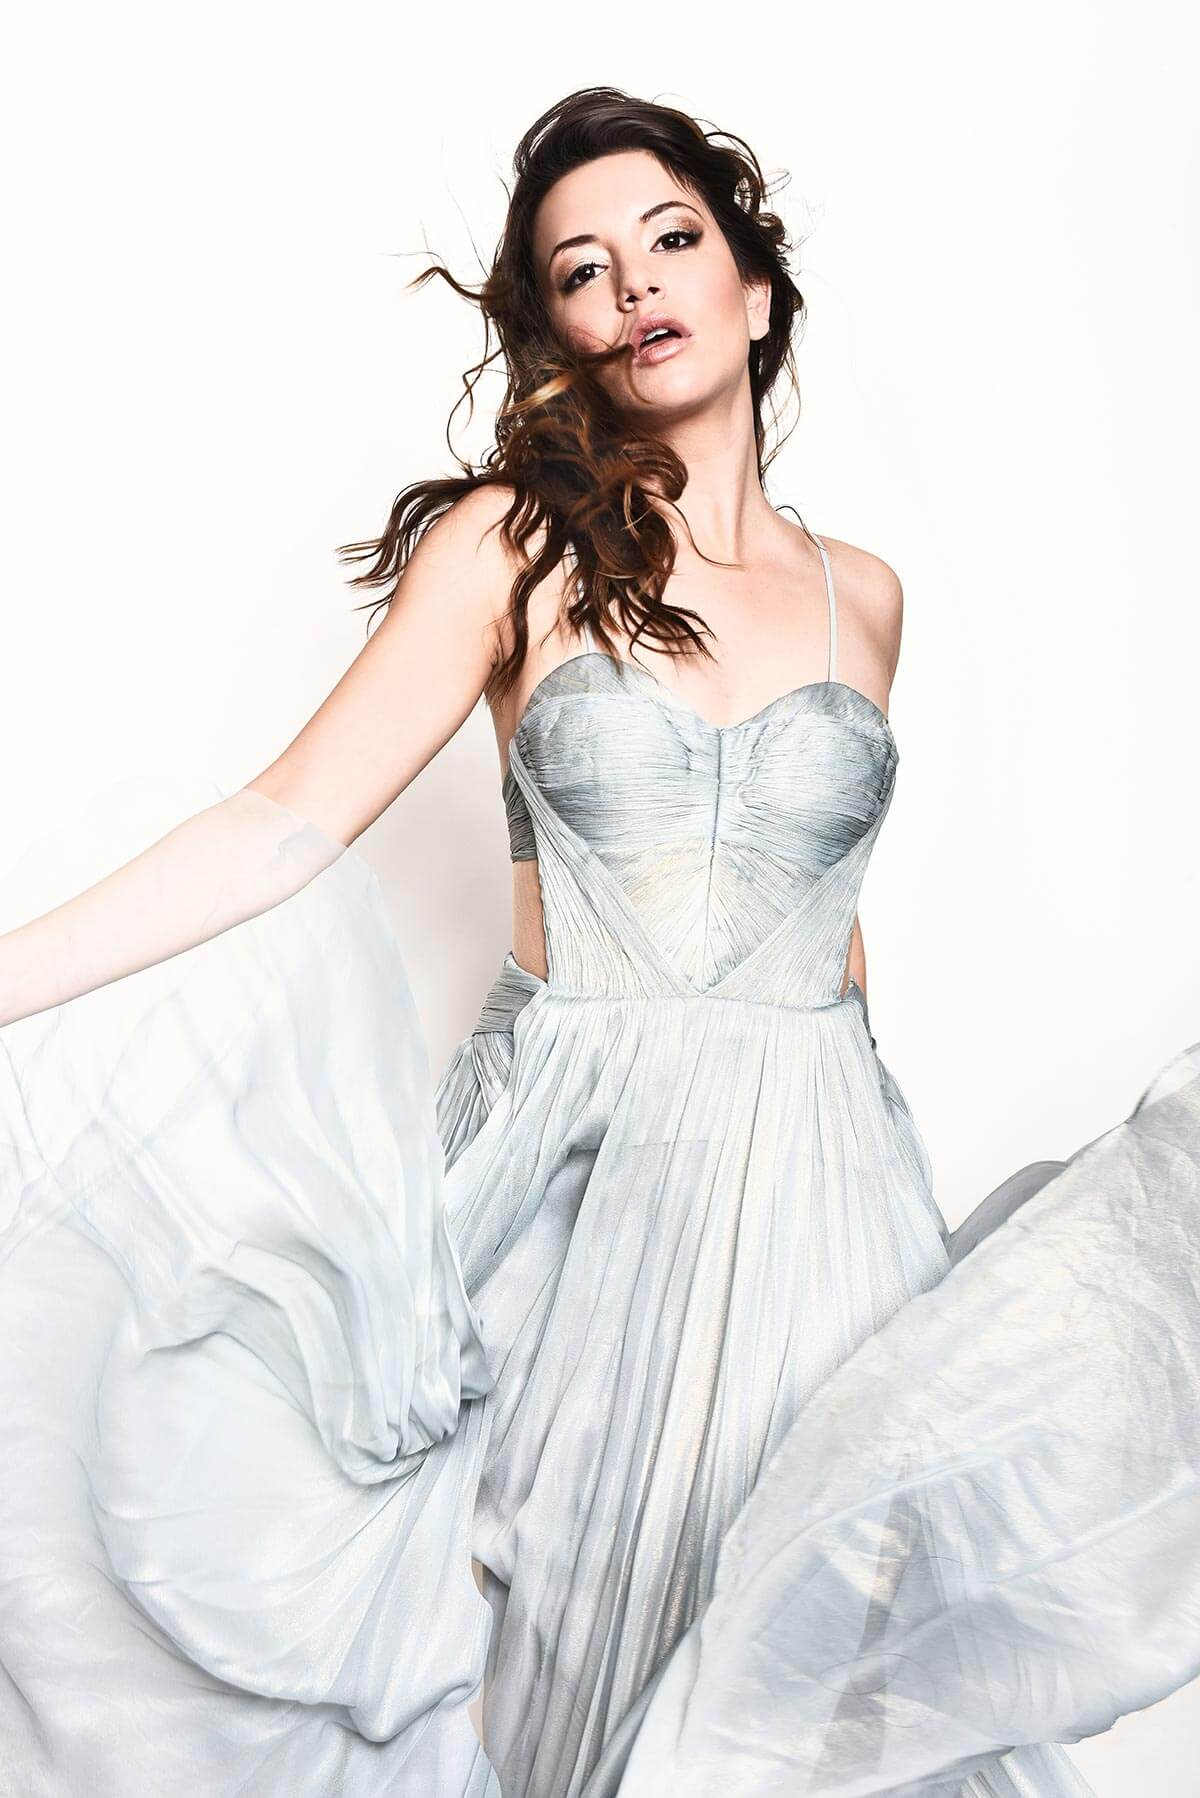 Chillin' with Masiela Lusha, beautiful silver flowing dress on white